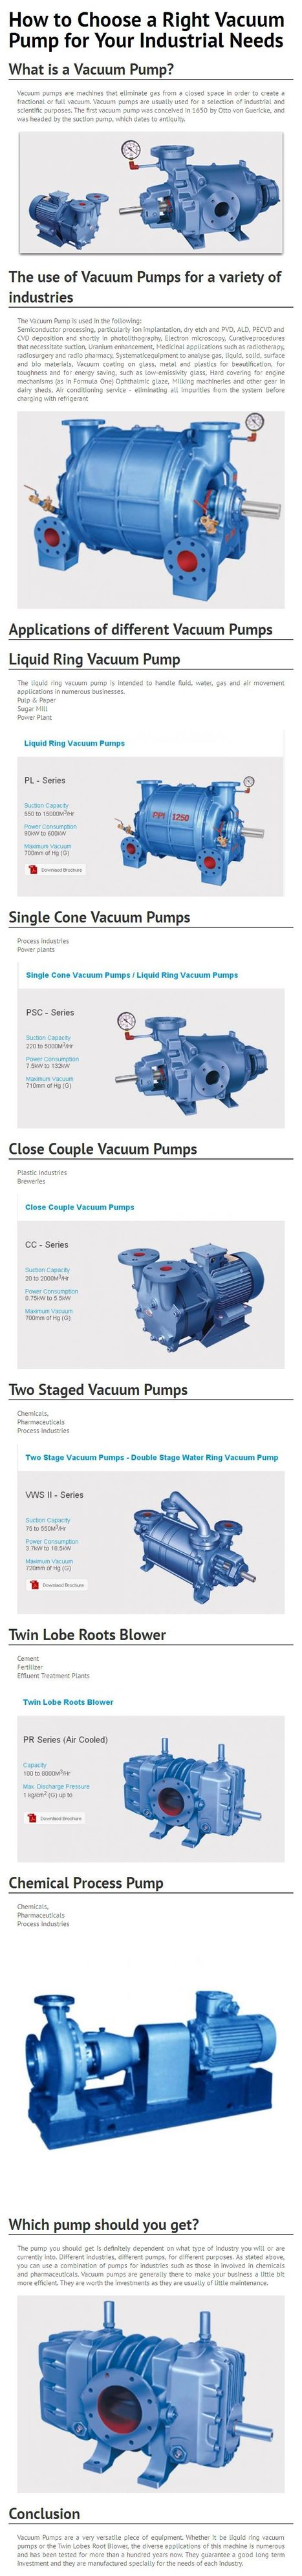 How to Choose a Right Vacuum Pump for Your Industrial Needs | PPI Pumps Pvt. Ltd. | Scoop.it